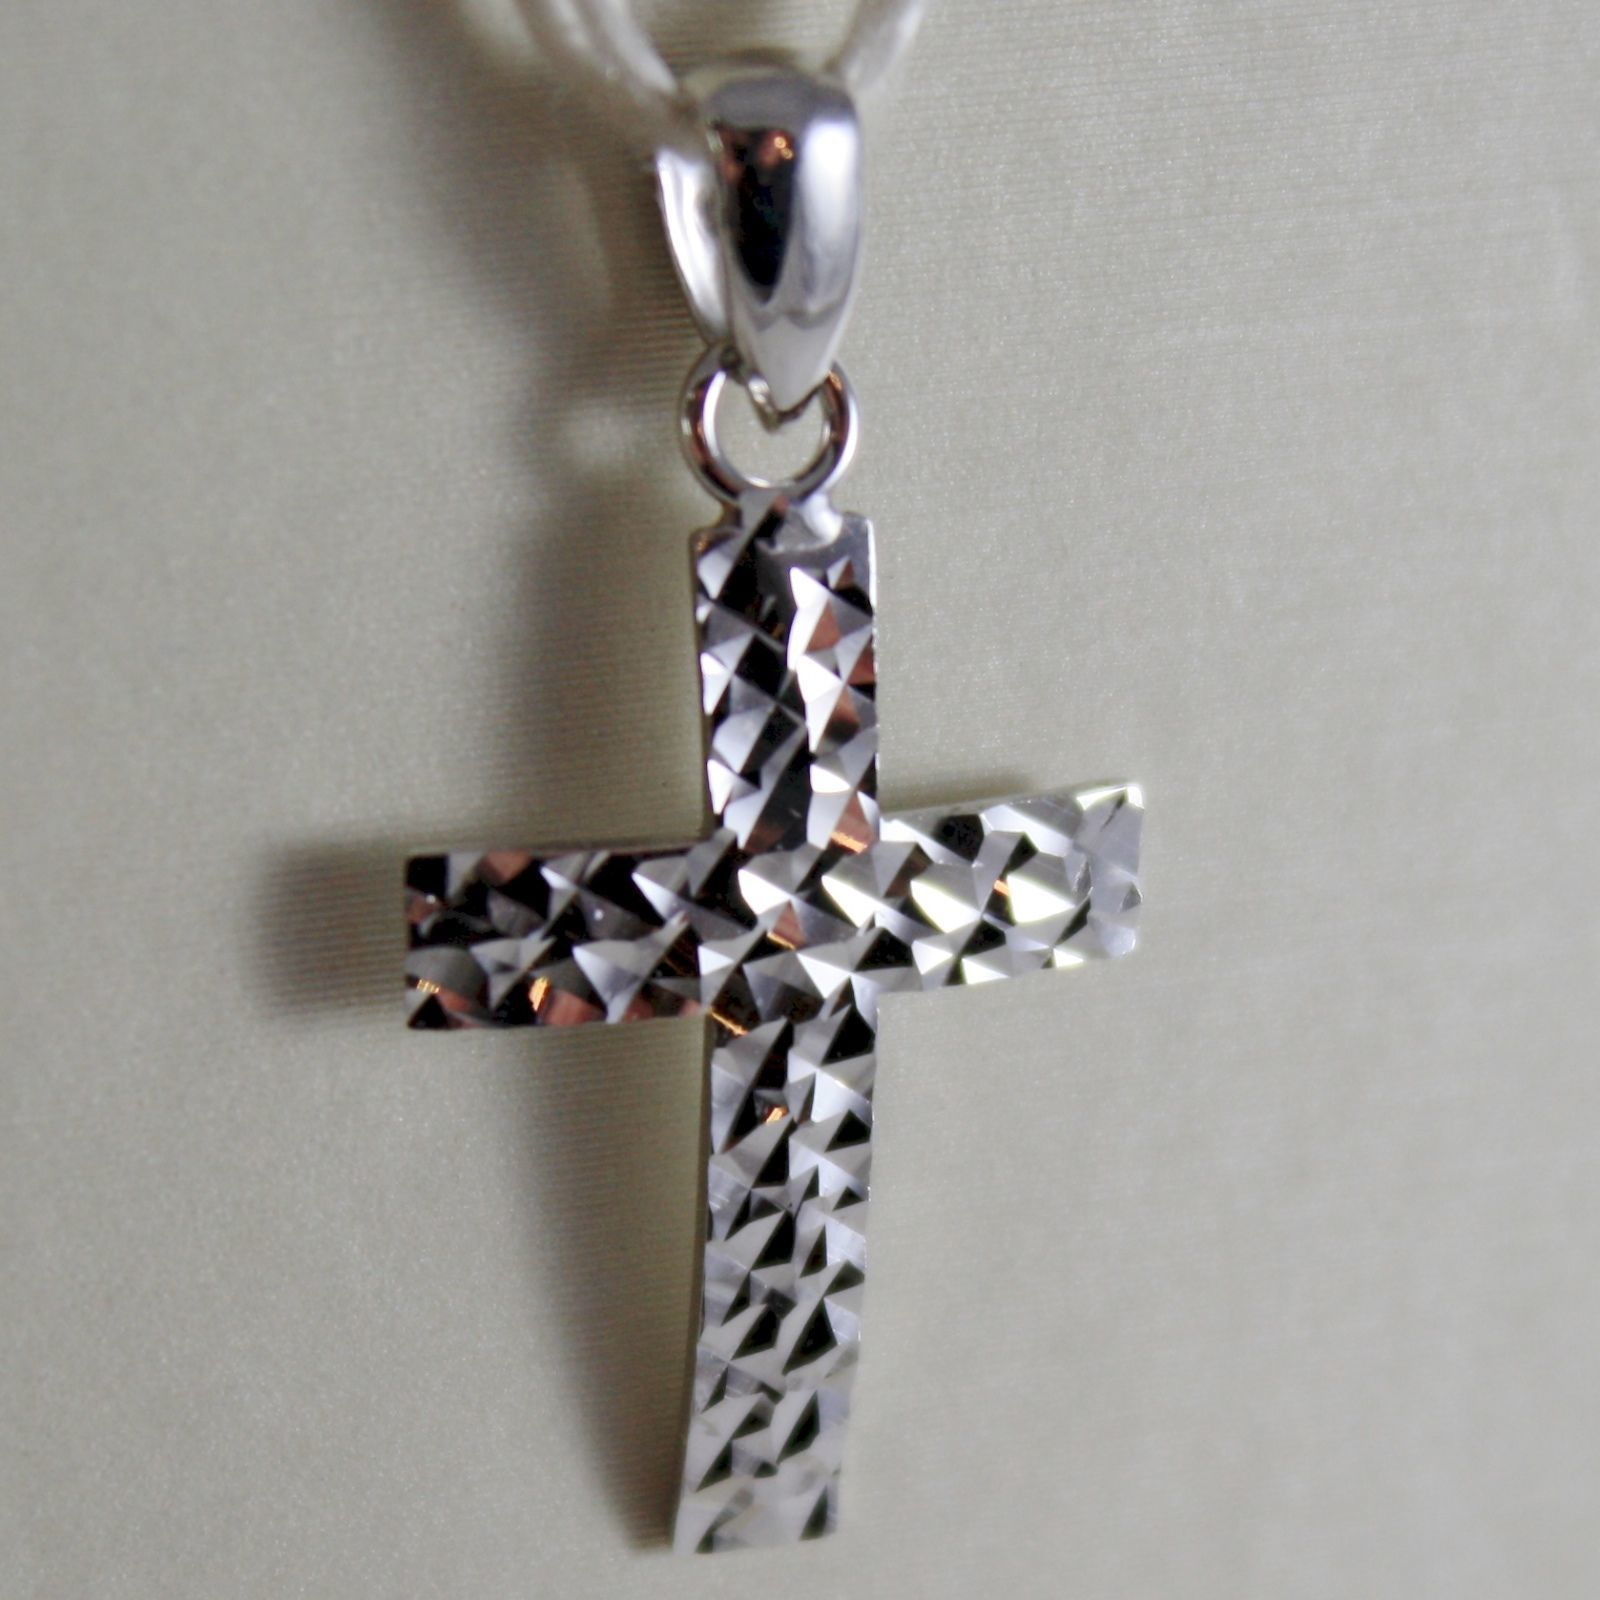 CROSS PENDANT WHITE GOLD 750 18K, SQUARED, CURVED, WORKED, MADE IN ITALY